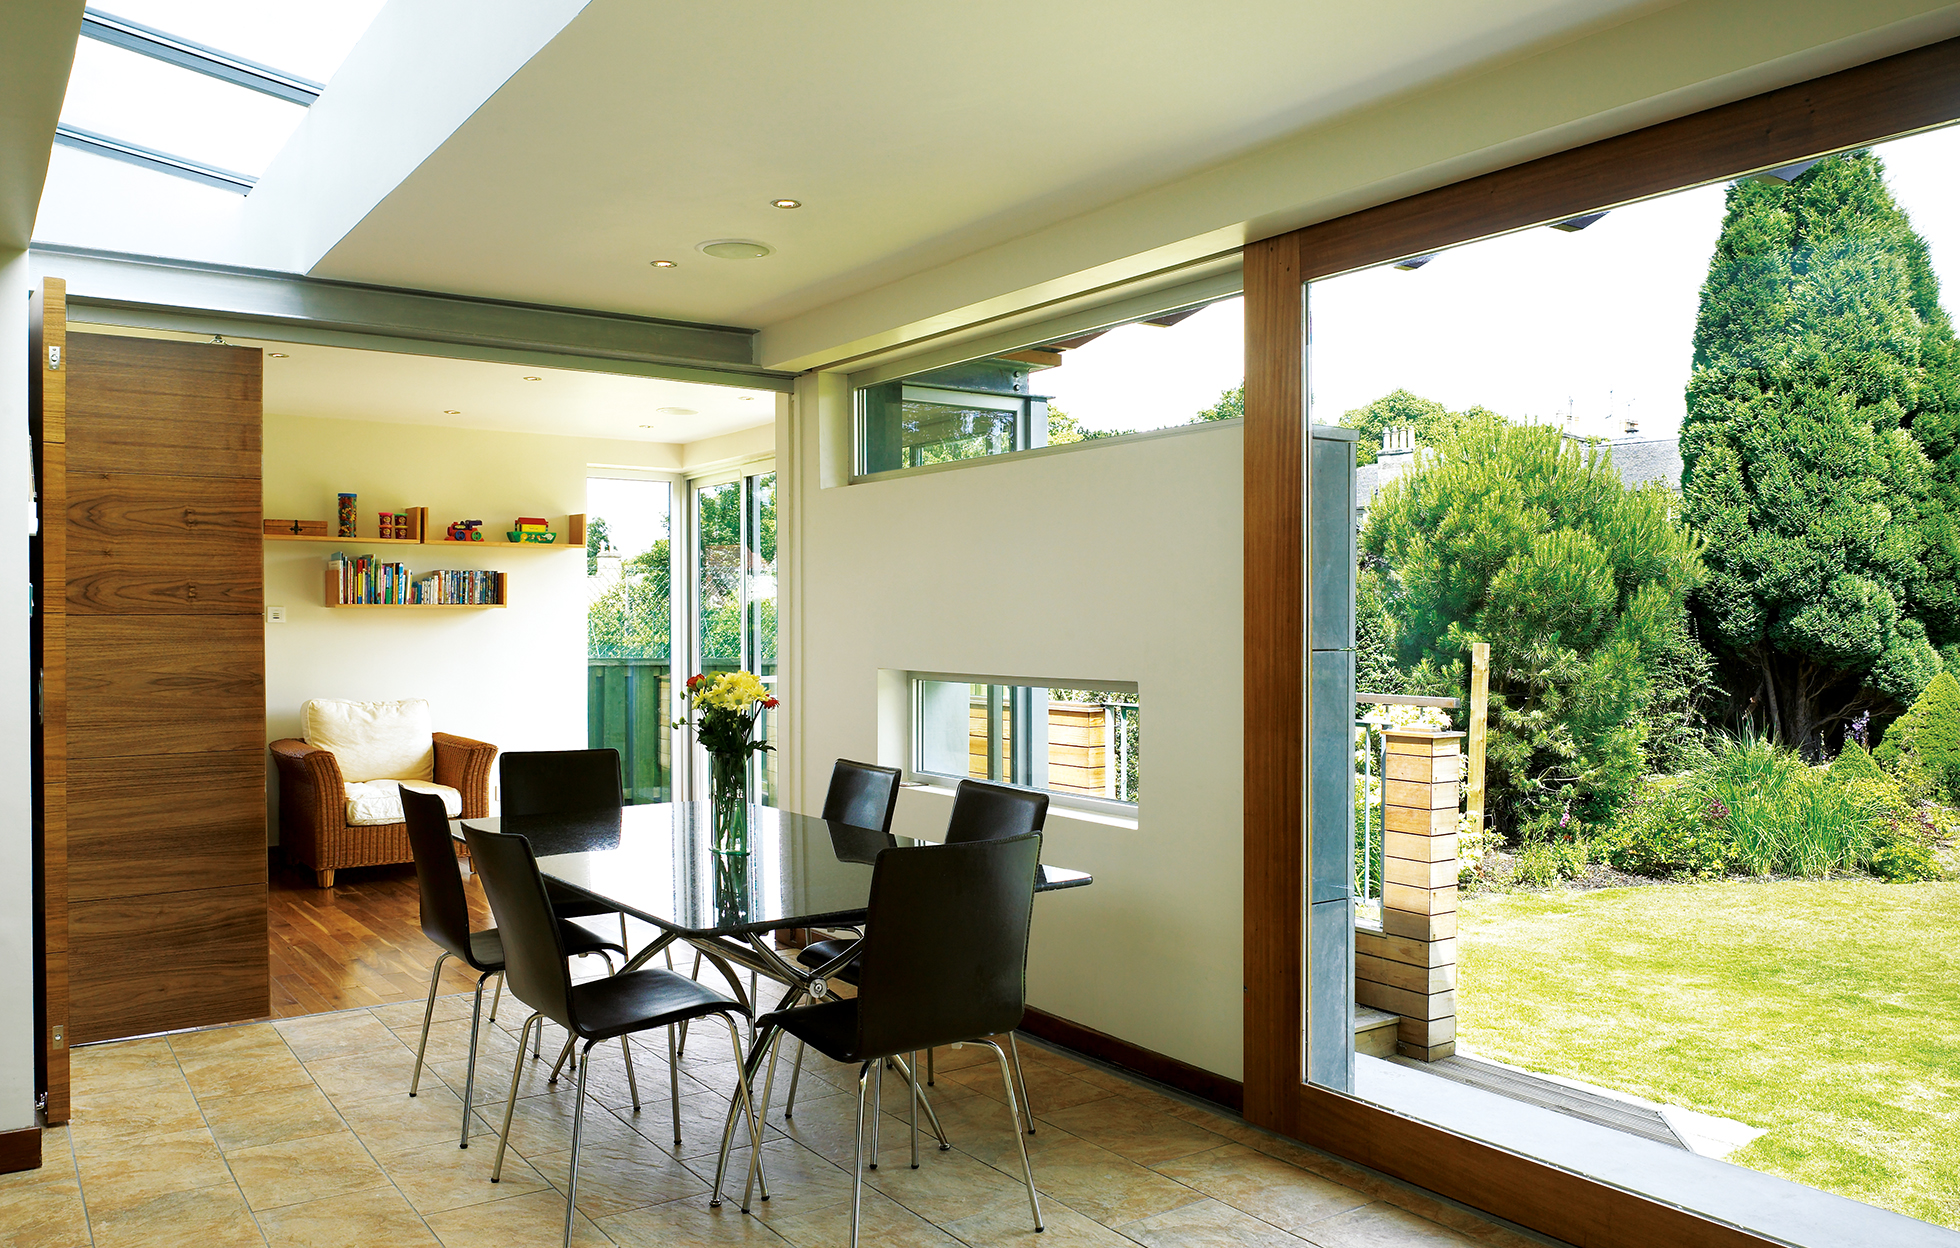 House extensions for every budget: £50,000-£90,000 | Real Homes